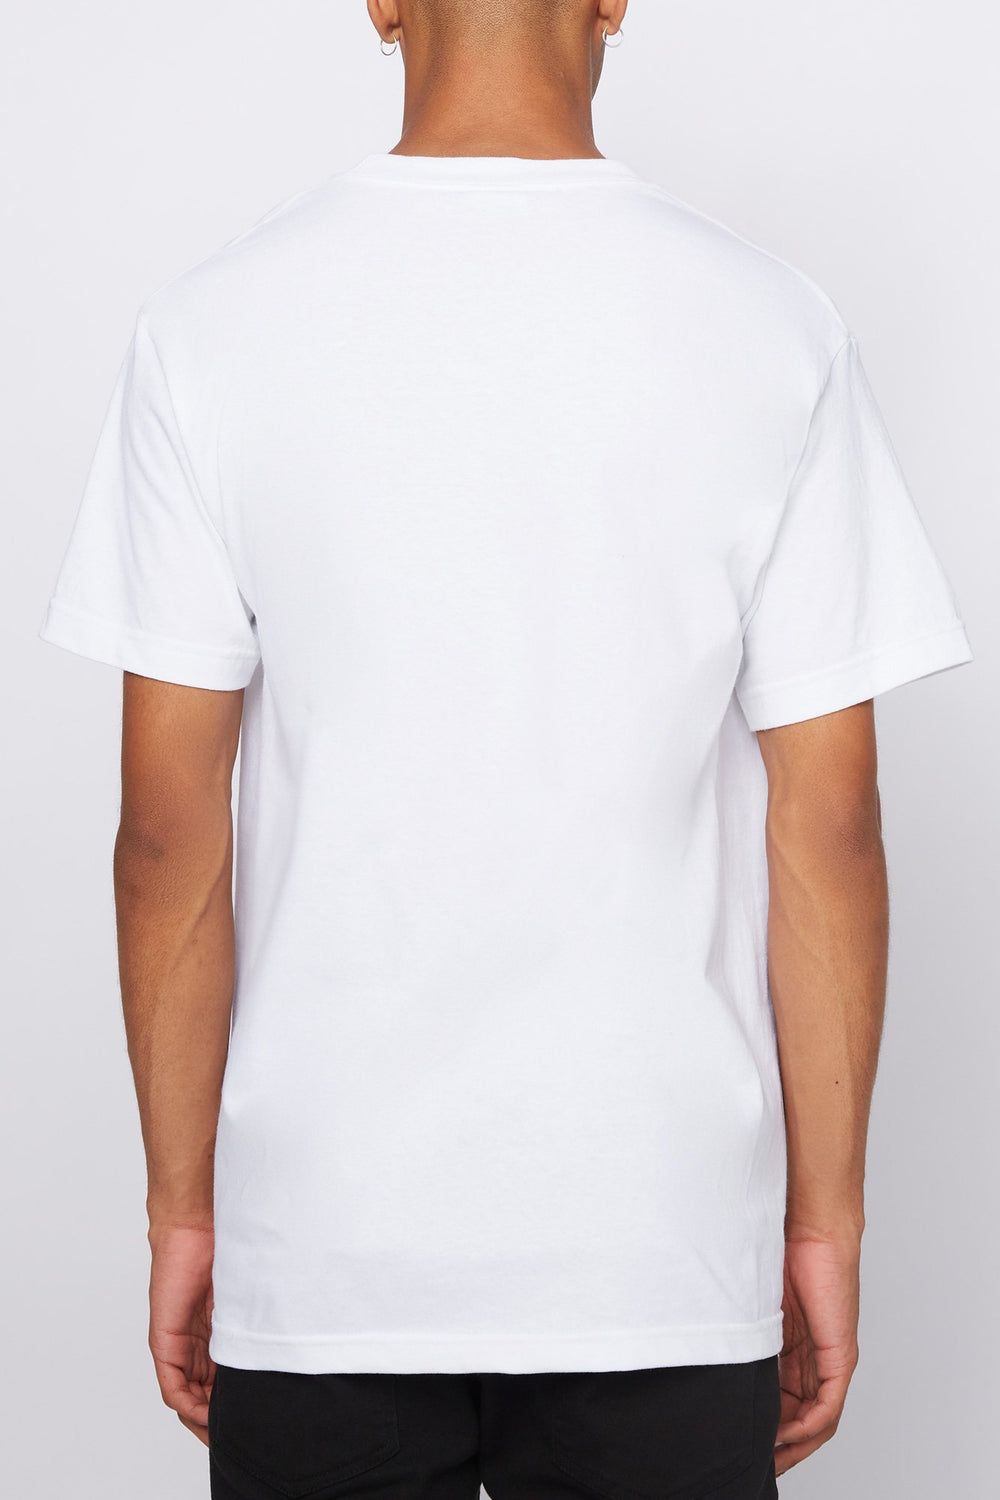 T-Shirt Imprimé Ric Flair 40s & Shorties Homme Blanc